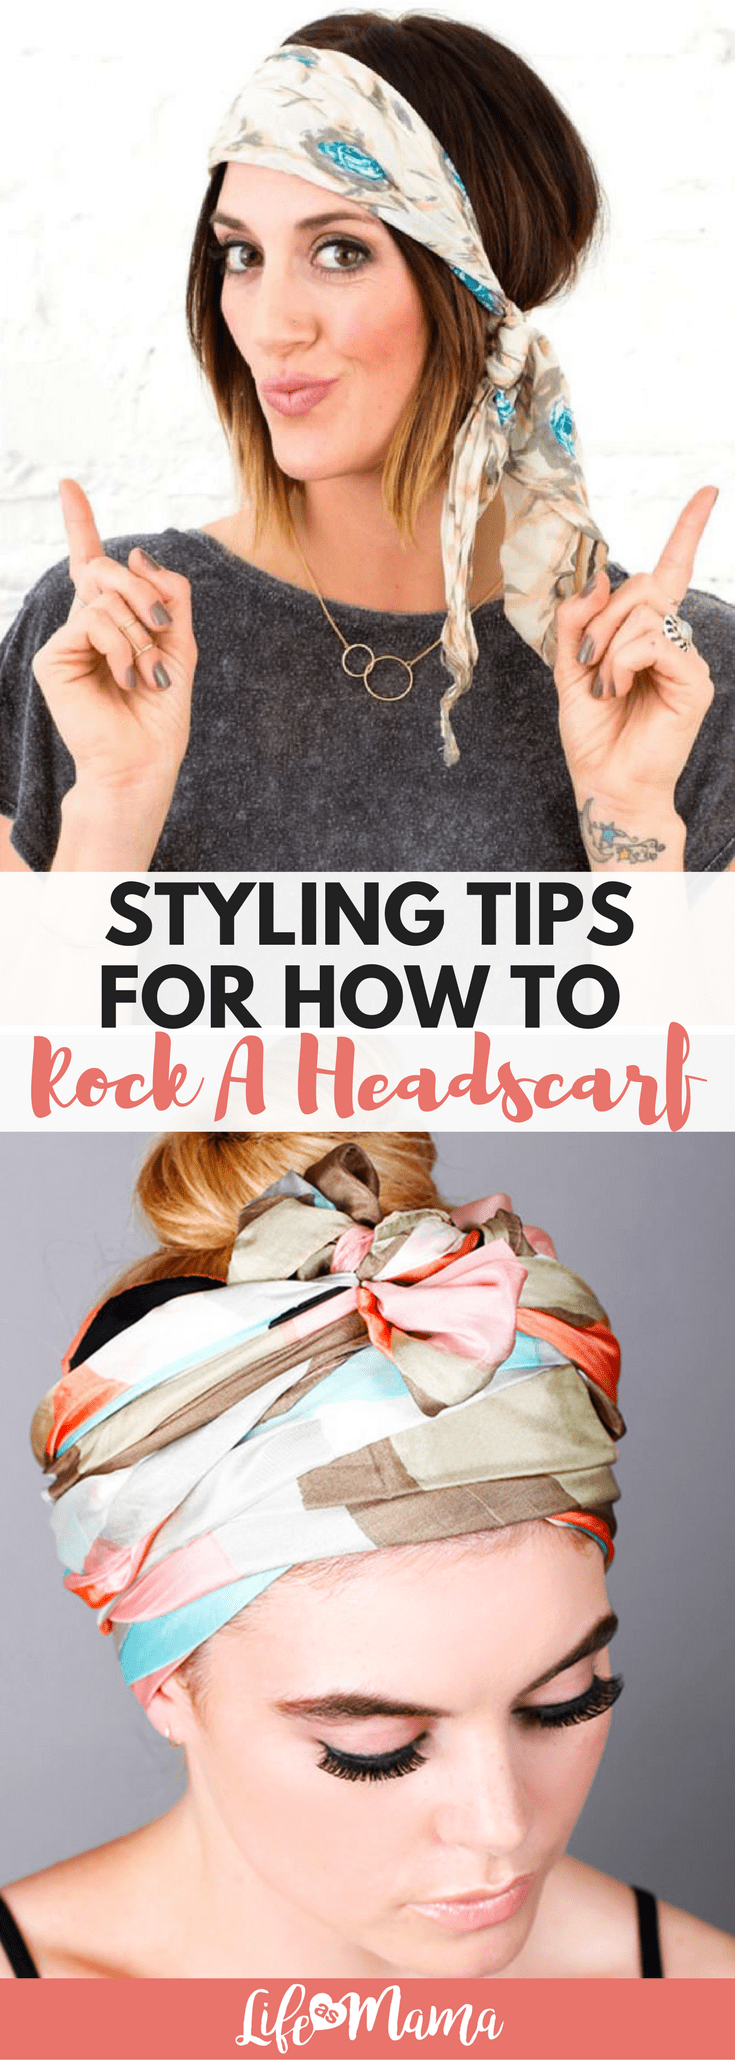 Styling Tips For How To Rock A Headscarf